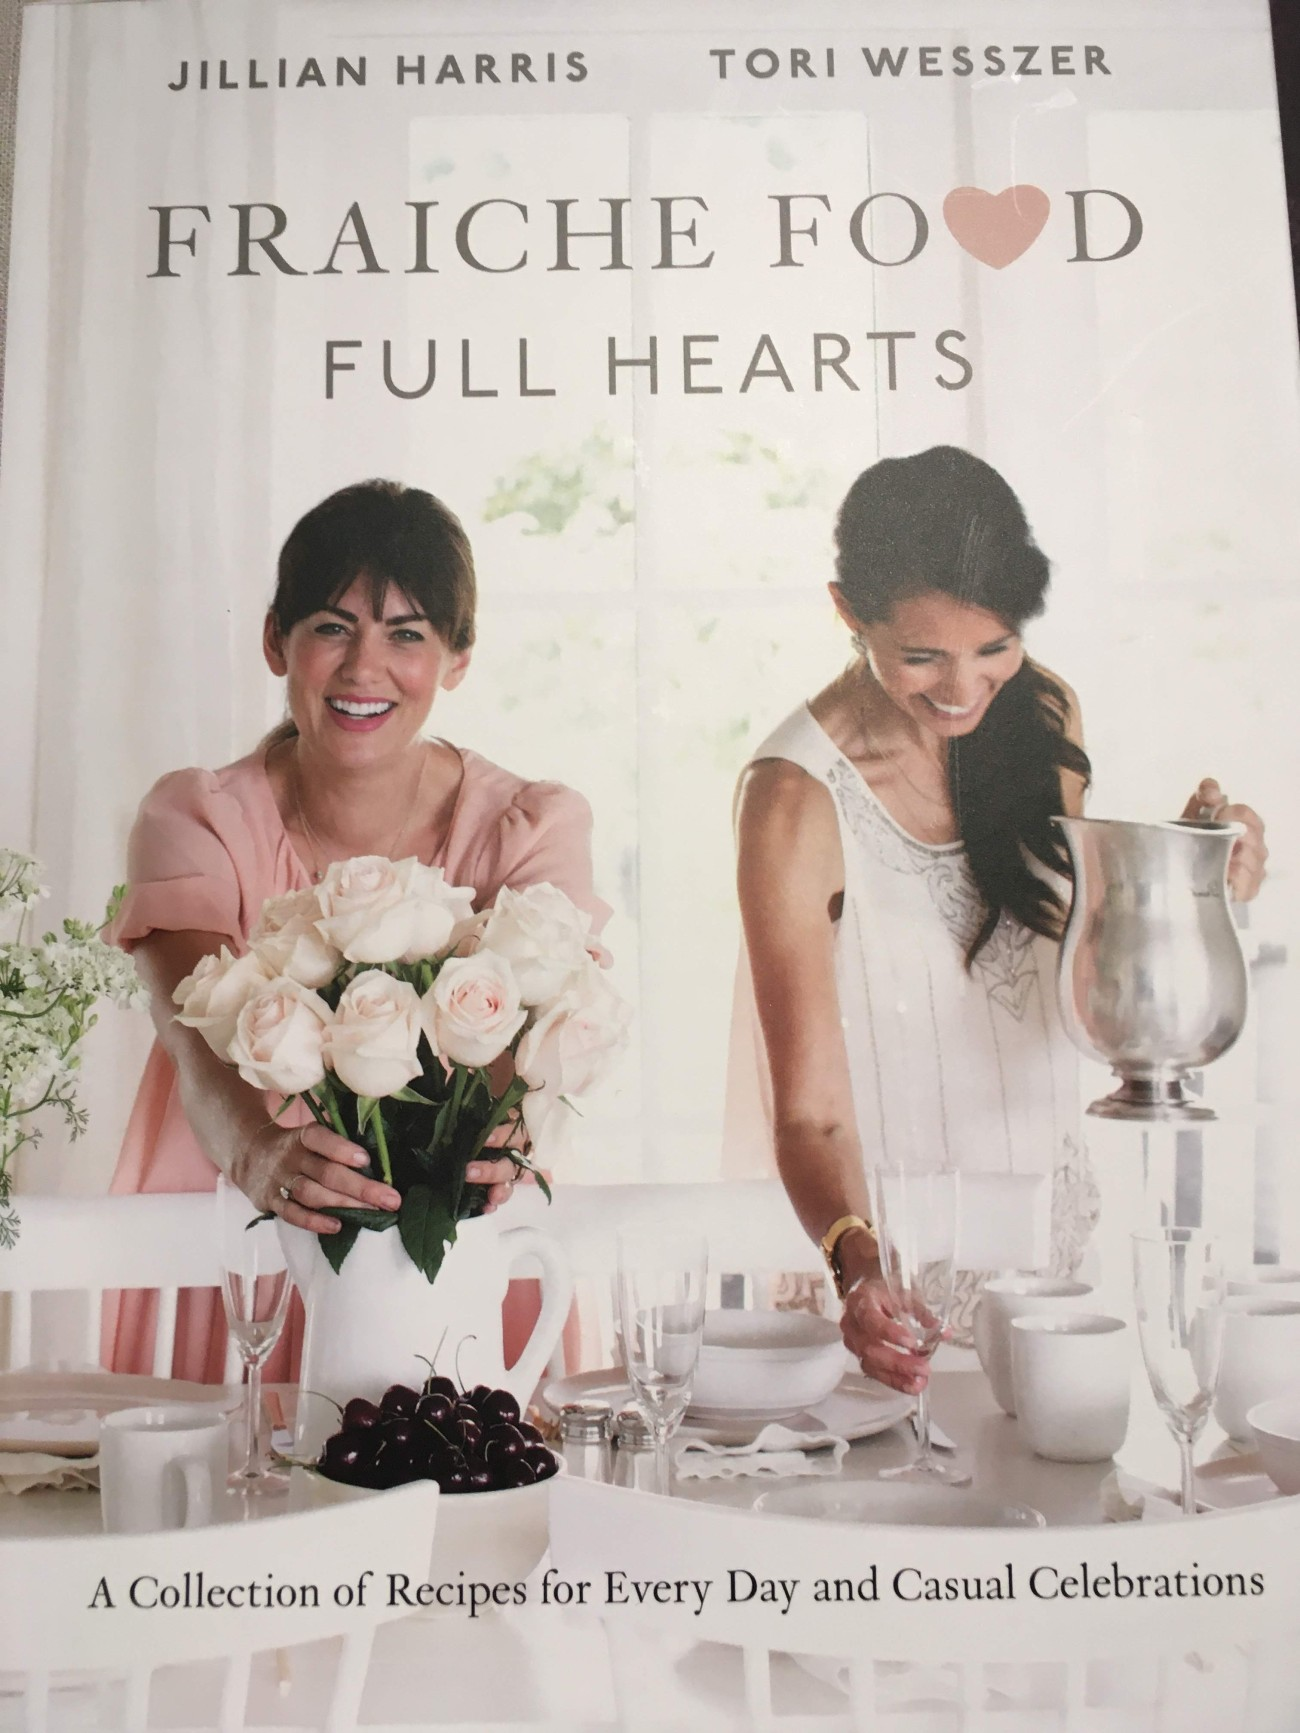 Fraiche food full hearts cookbook by Jillian Harris and Tori Wesszer